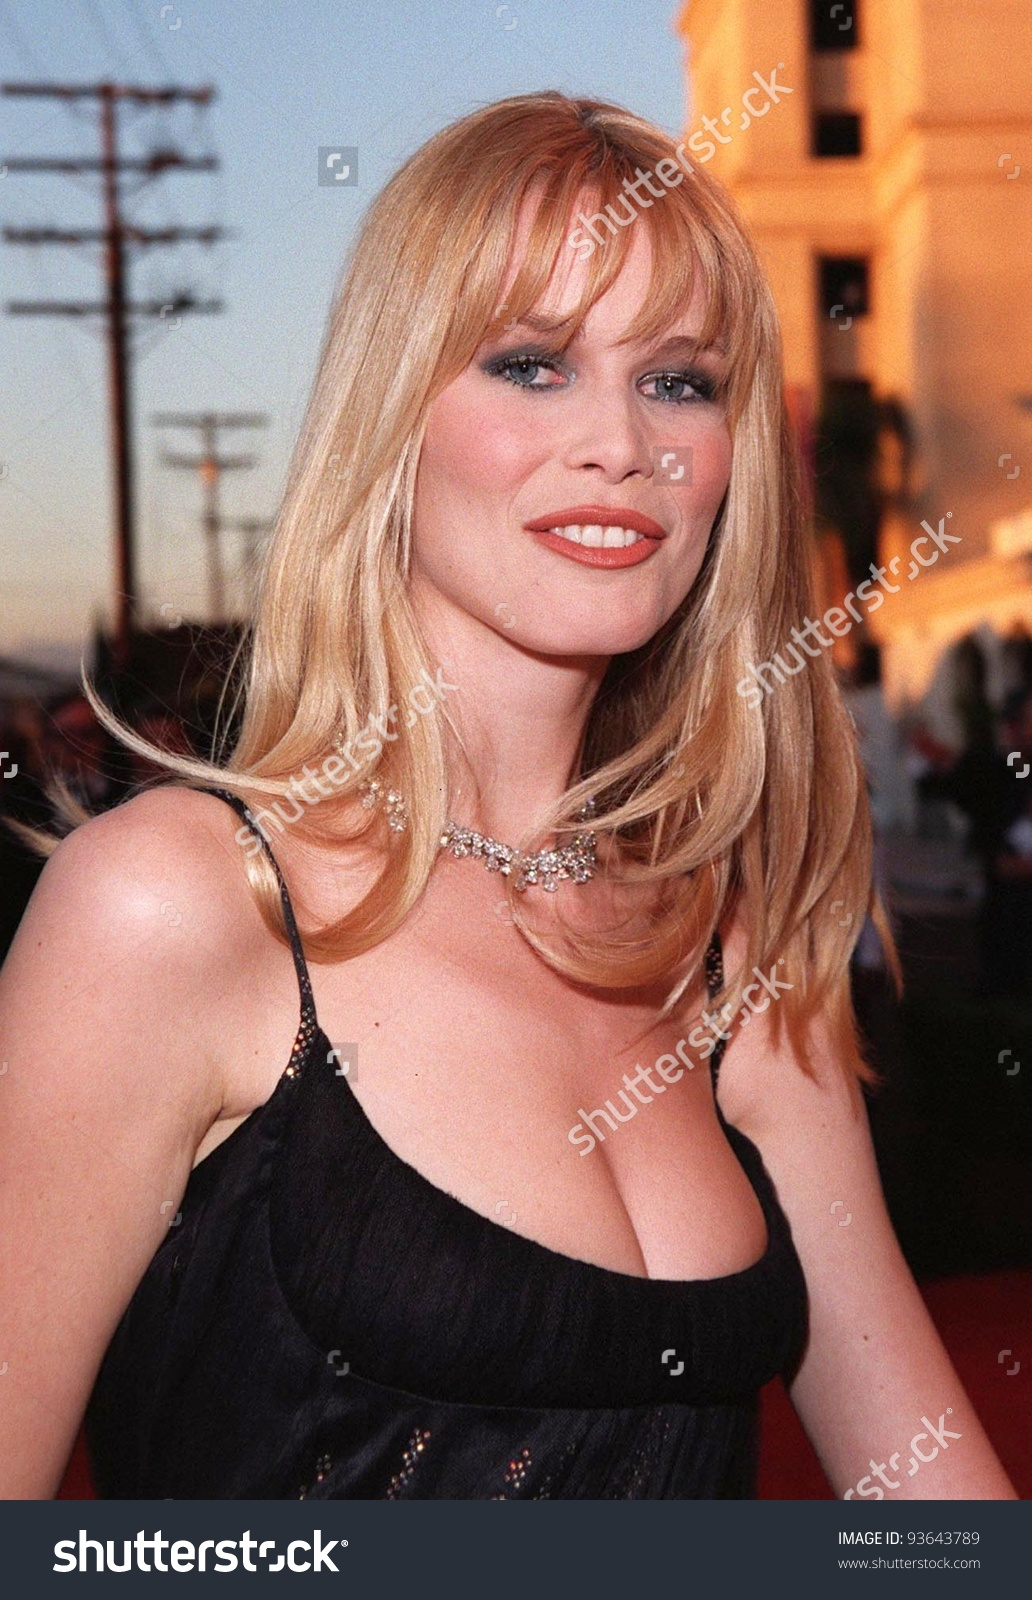 23mar98: Supermodel Claudia Schiffer At The 70th Academy Awards.